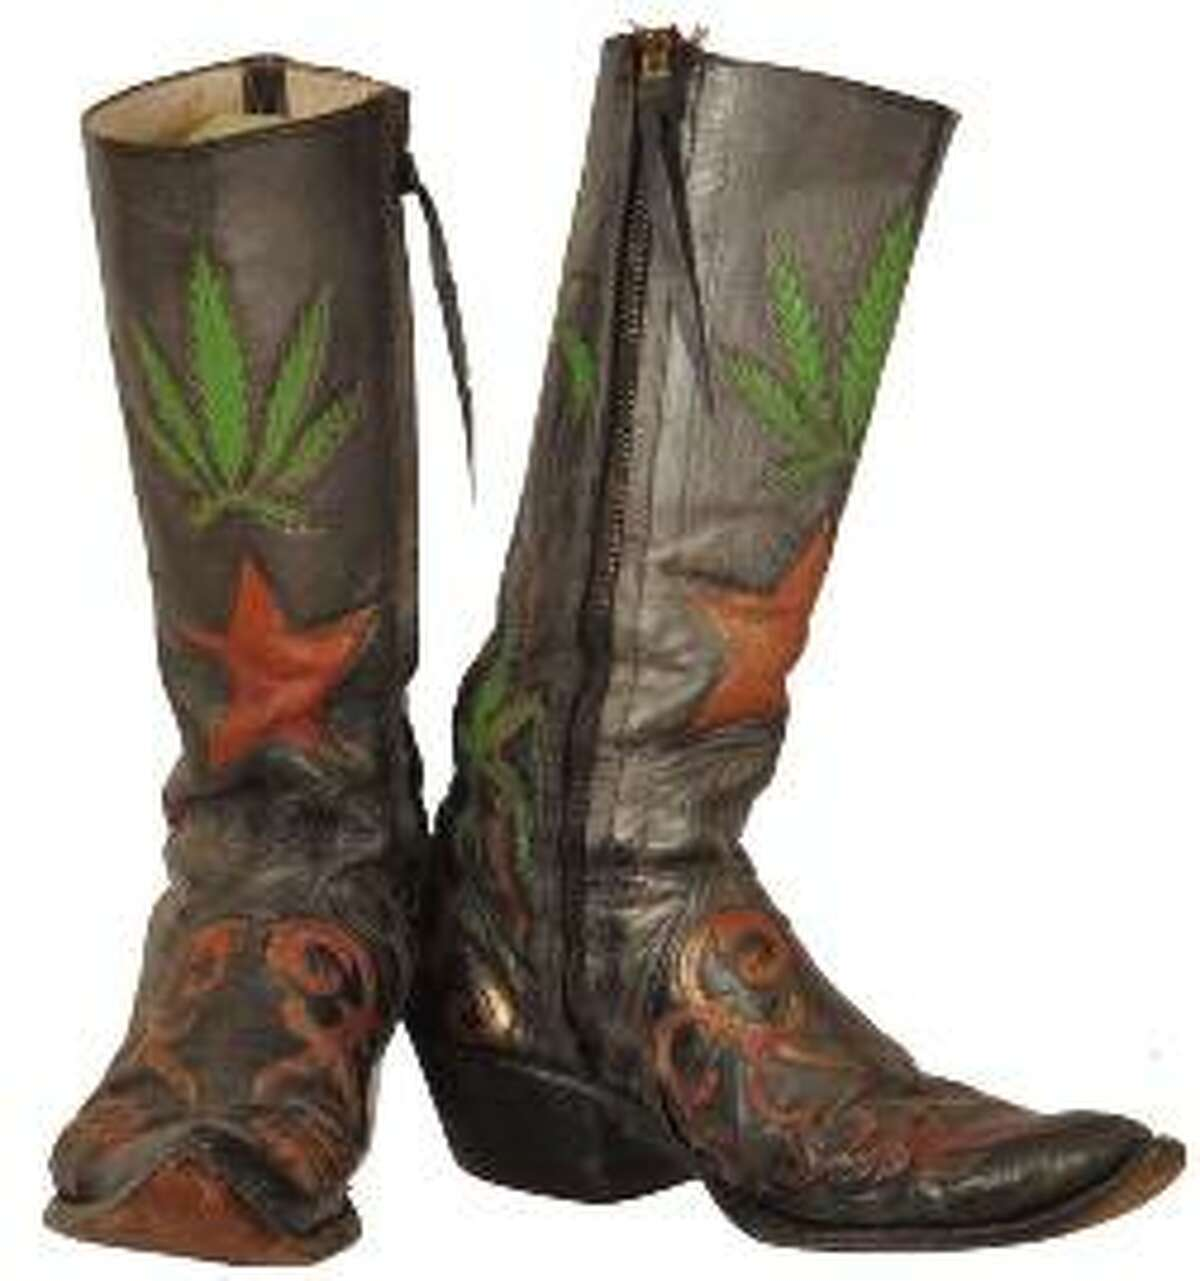 The Original Pair of Charlie Dunn Marijuana Boots Item for auction from the collection of Armadillo World Headquarters & Threadgill's Collection.